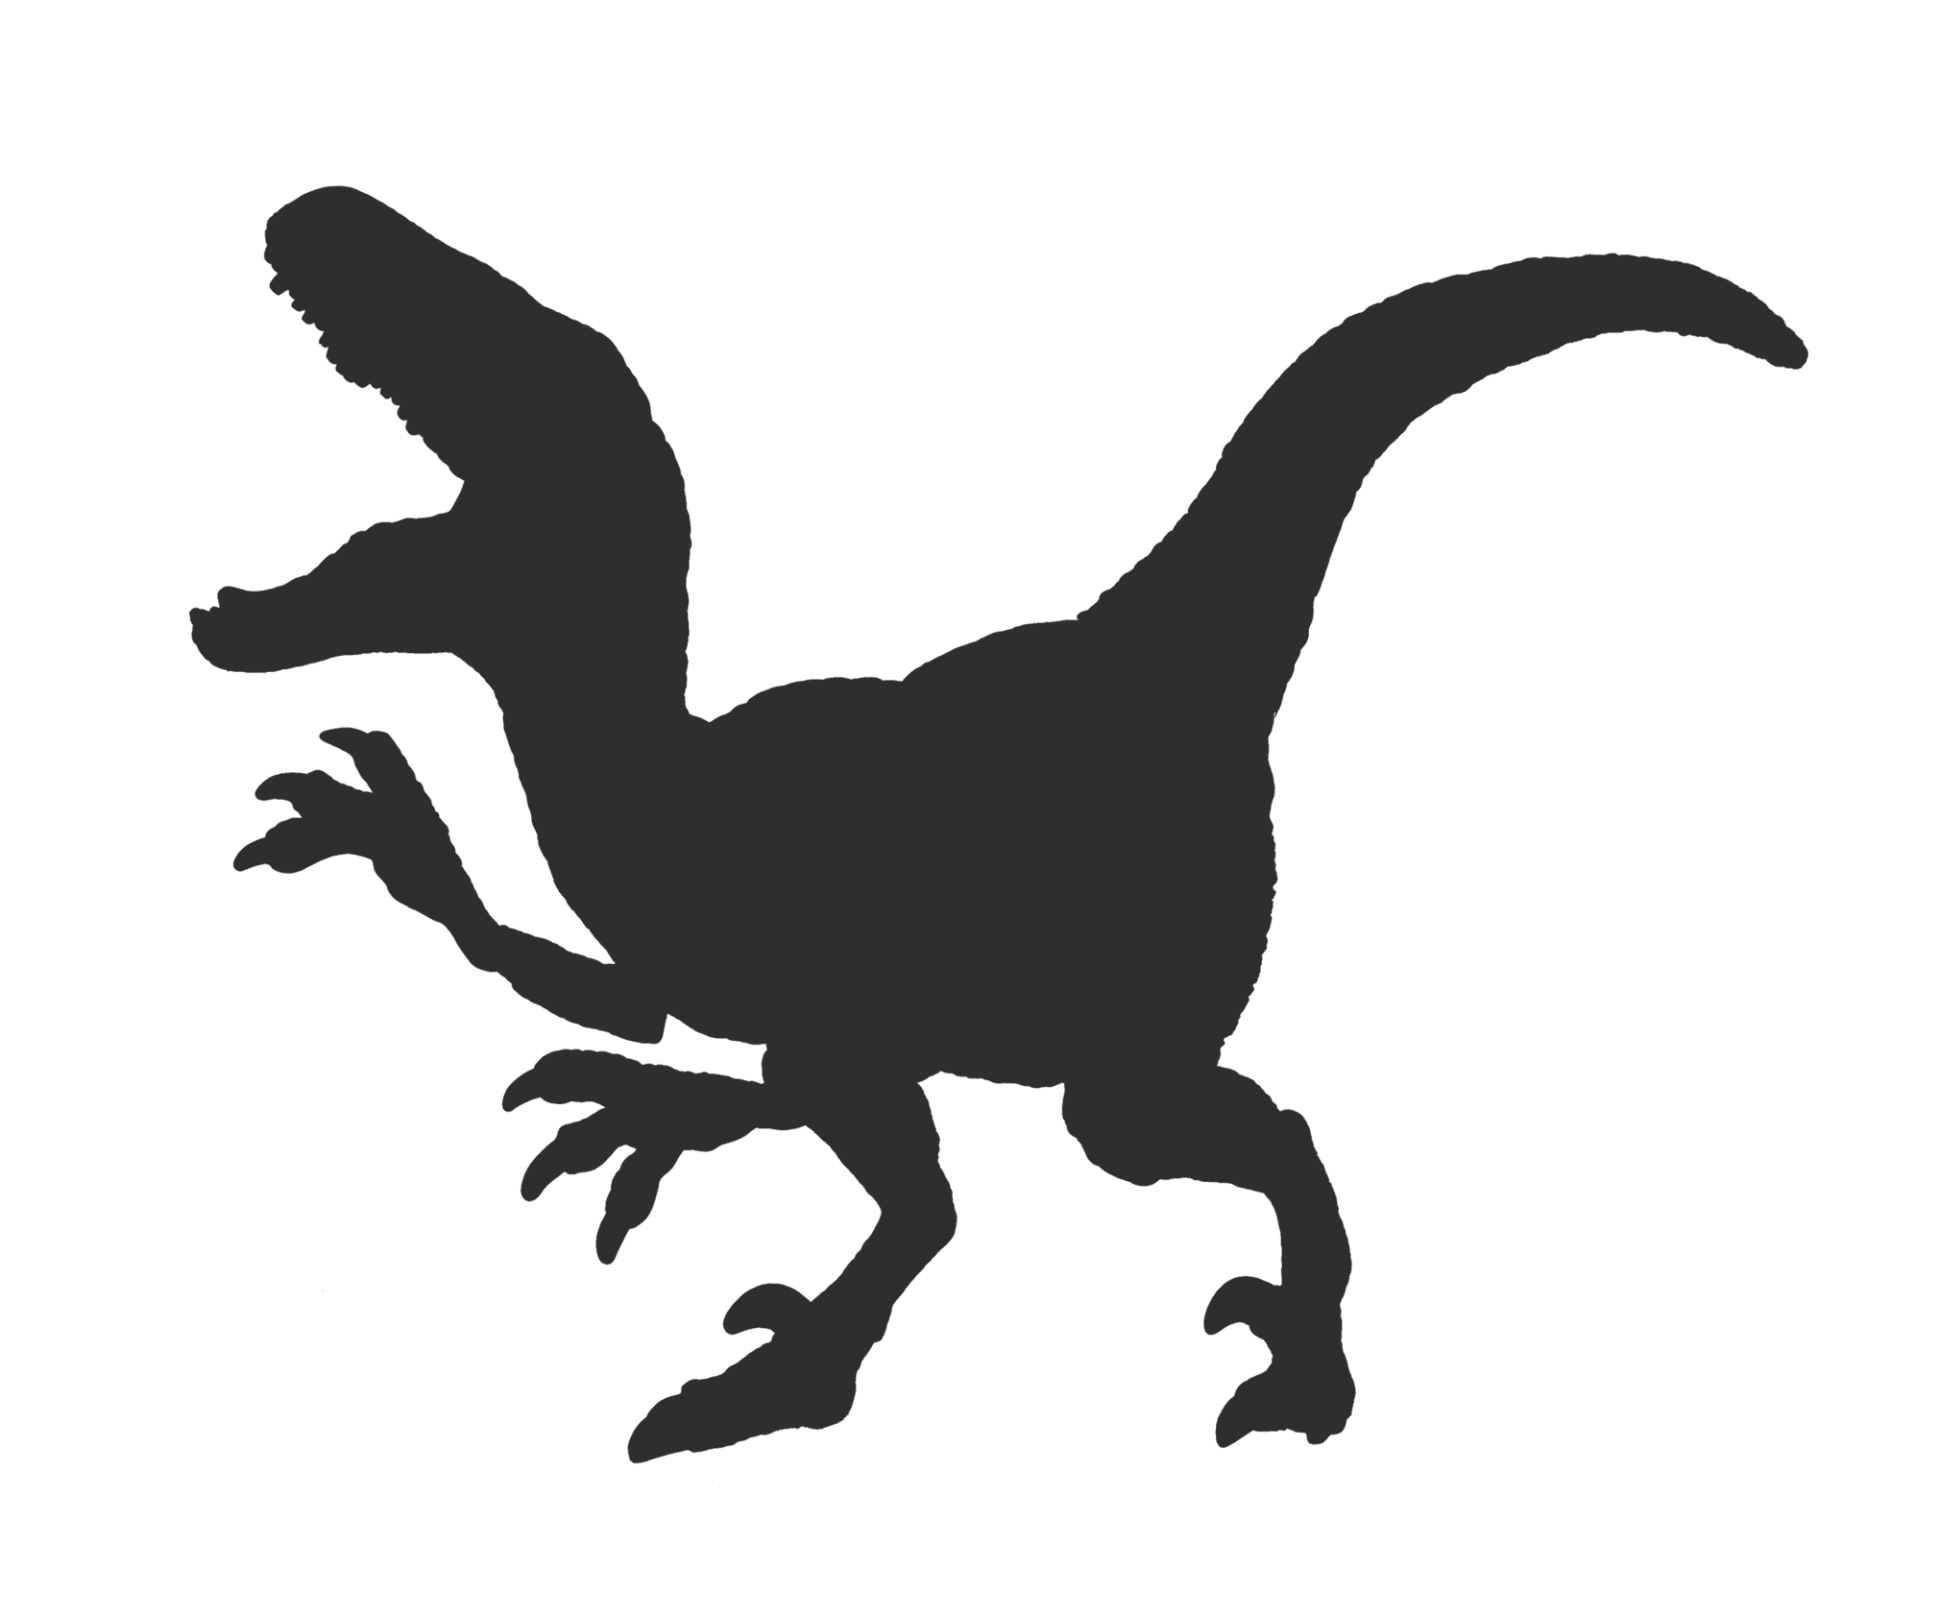 Velociraptor silhouette png. Dinosaur free download